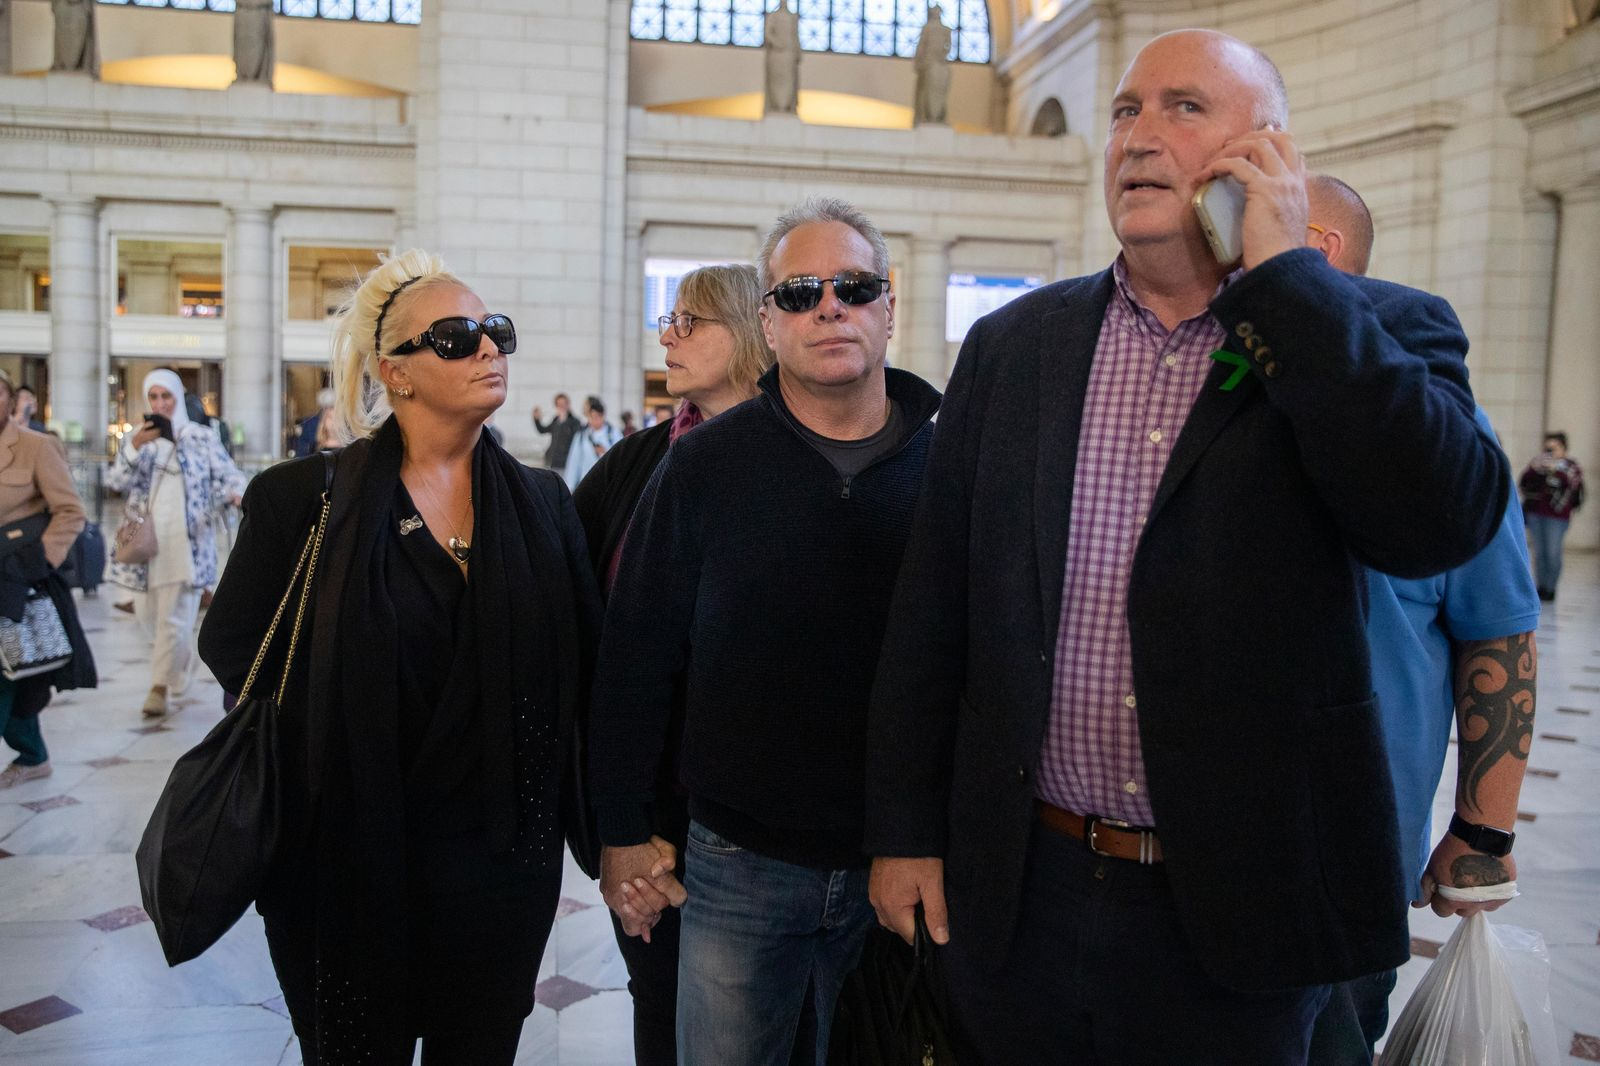 Charlotte Charles, left, mother of British teenager Harry Dunn, and her husband Bruce Charles, center arrive at Union Station in Washington, Tuesday, Oct. 15, 2019. (AP Photo/Manuel Balce Ceneta)